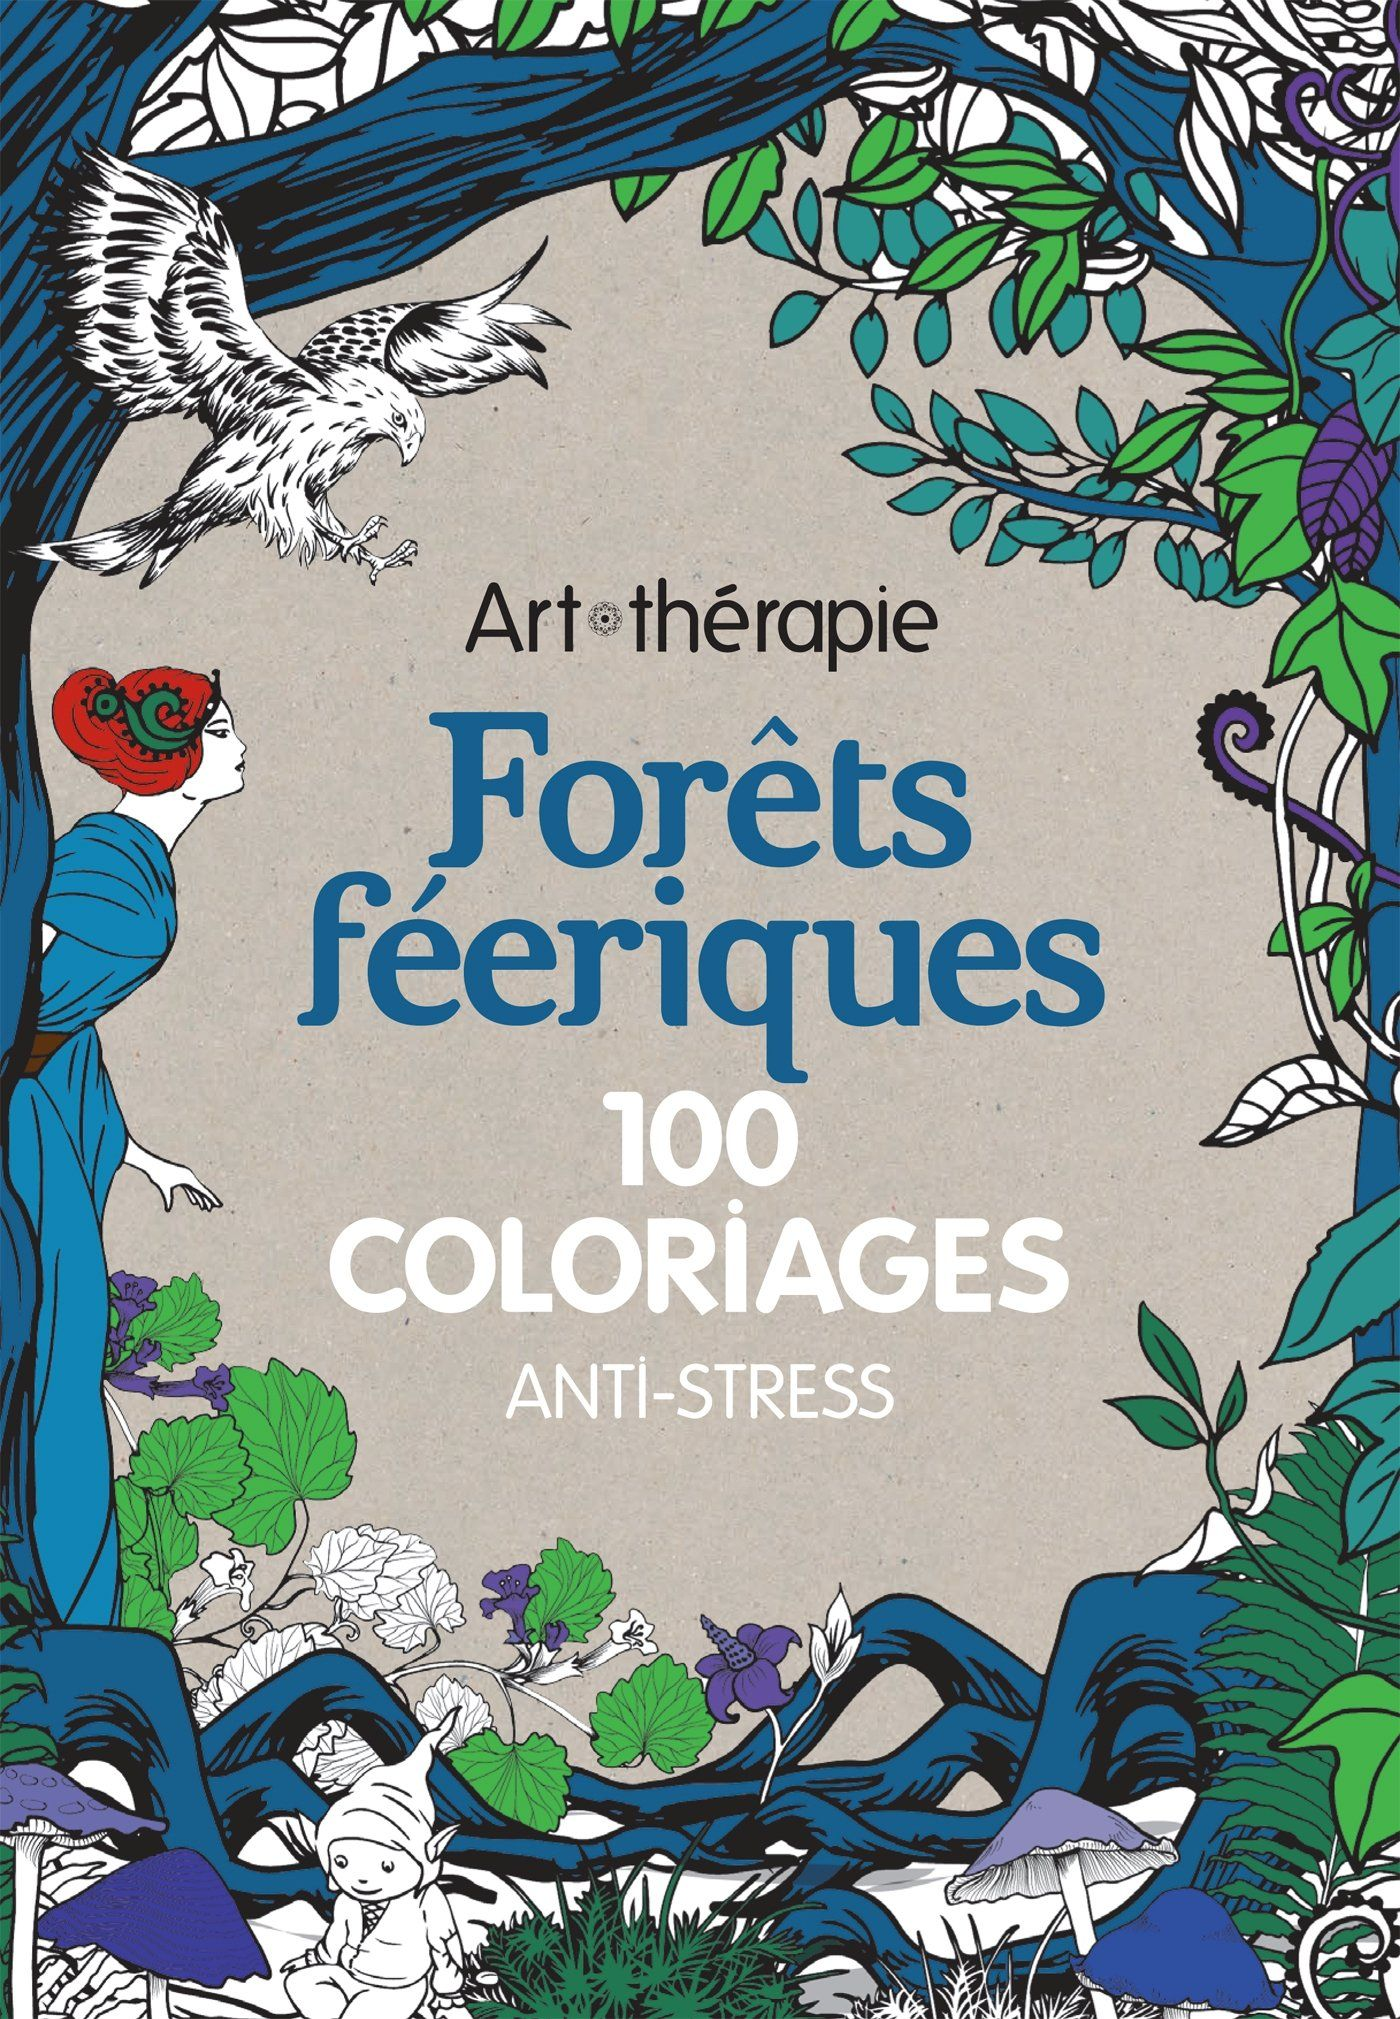 Art Therapie Forets Feeriques 100 Coloriages Anti